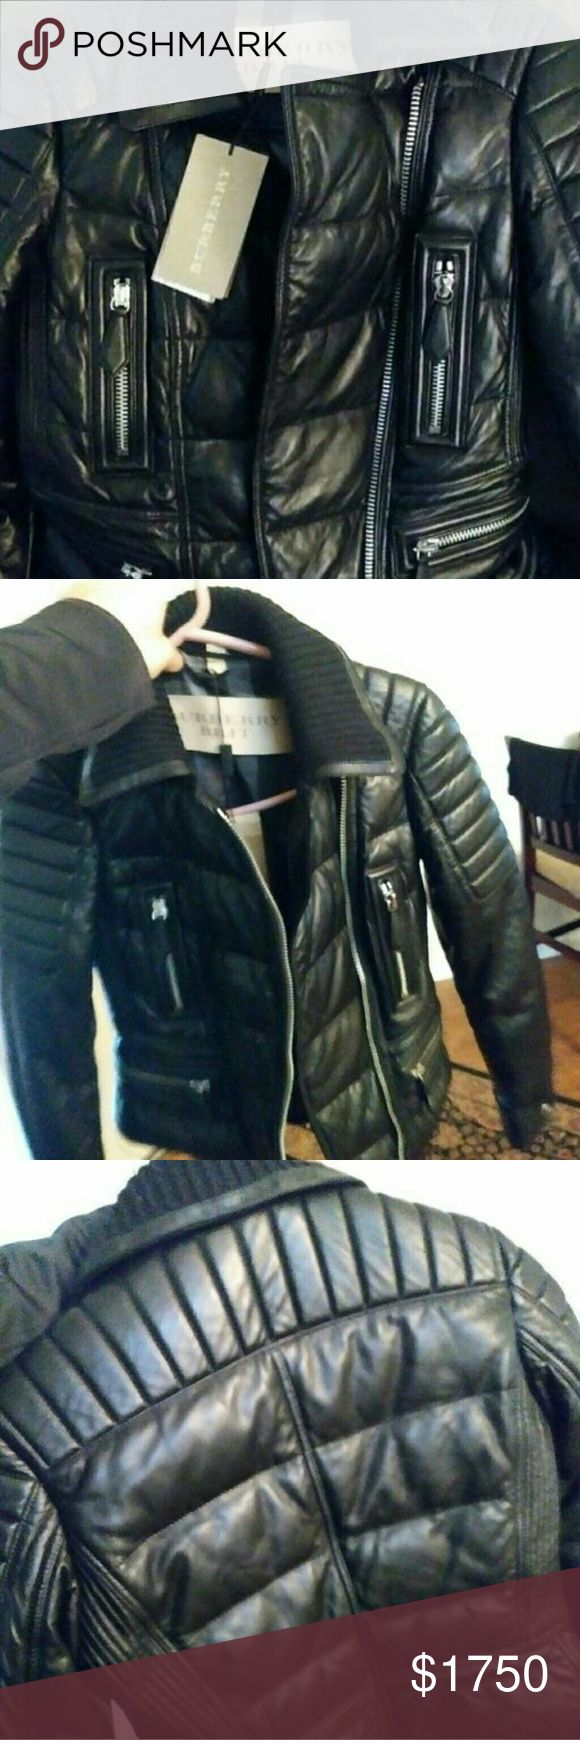 Burberry womans black leather jacket It has black leather with silver zippers and a black soft collar Burberry Brit Jackets & Coats